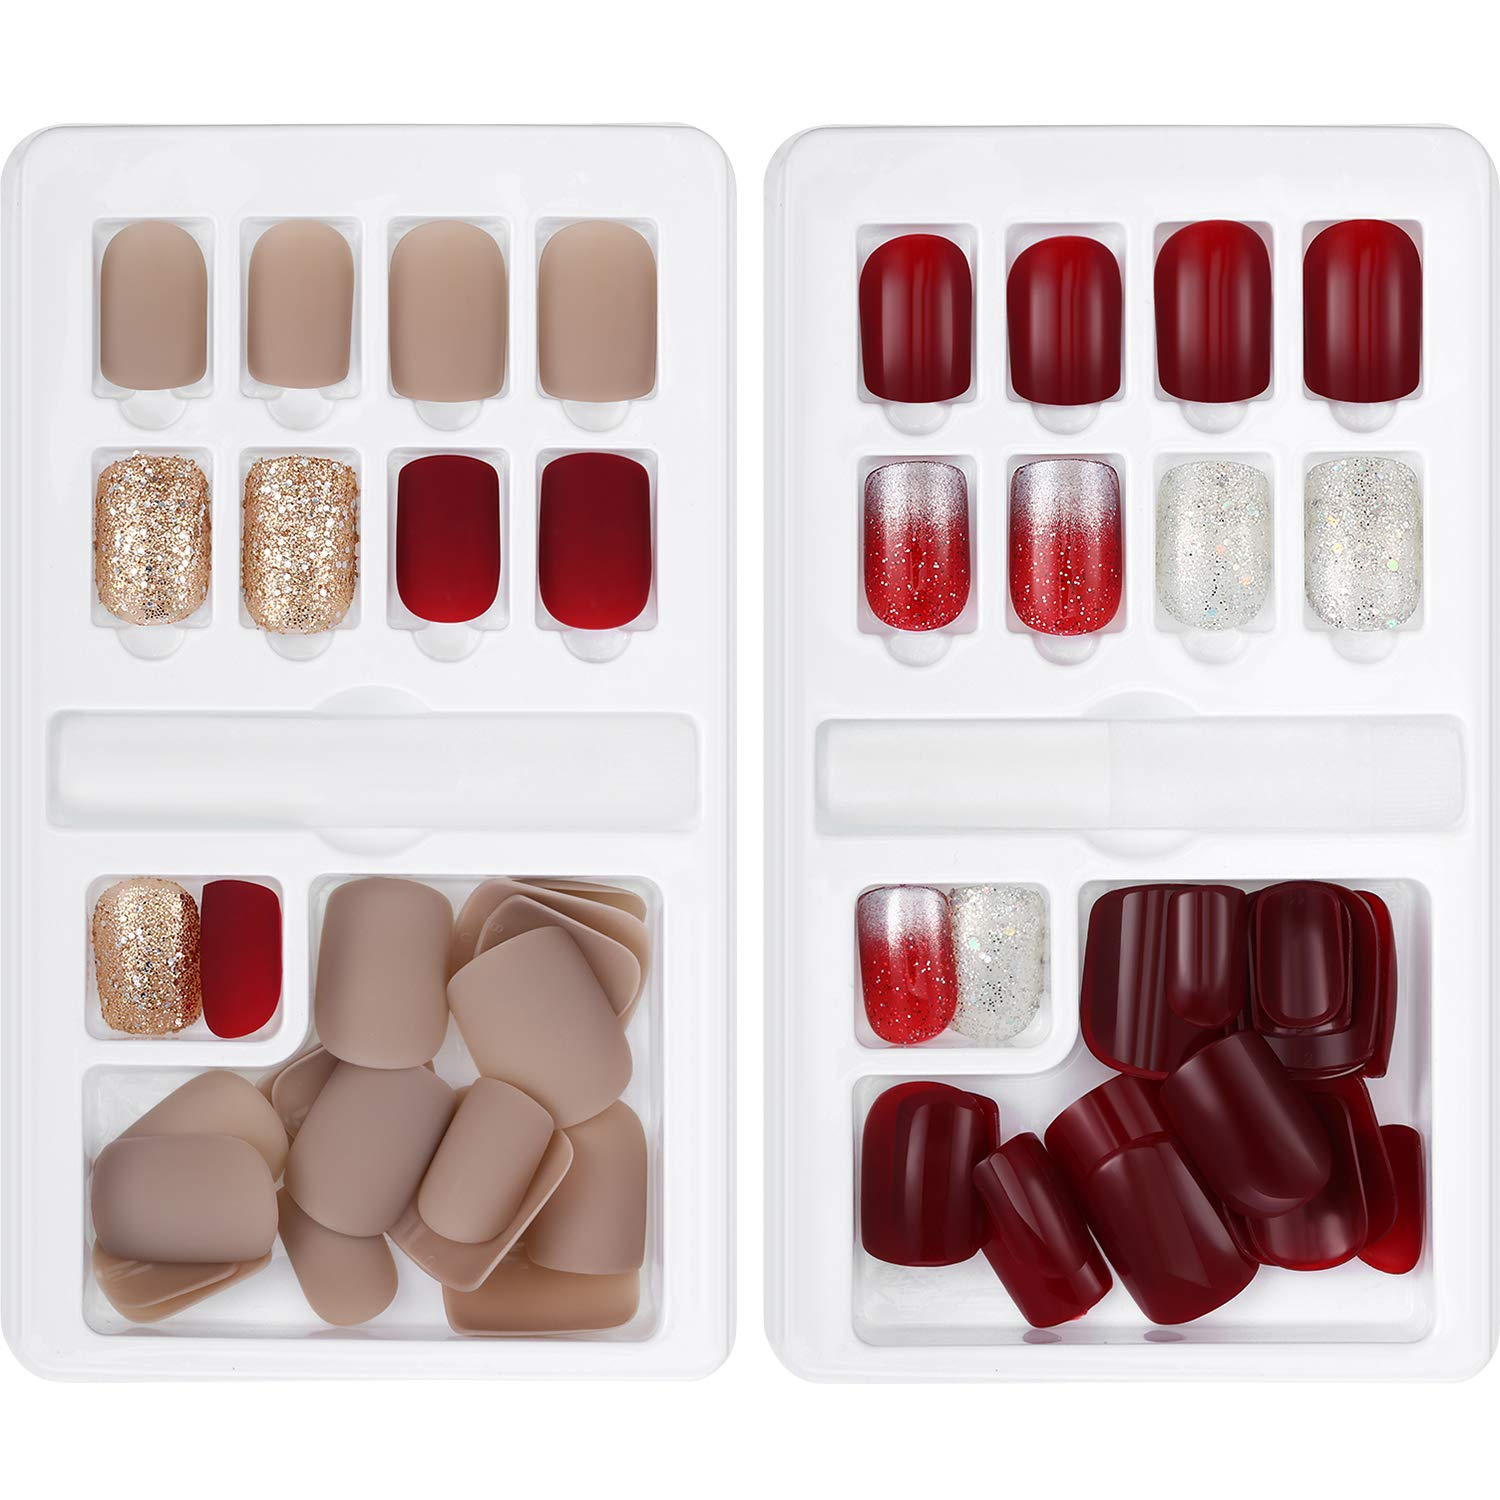 60 Pieces False Nails Artificial Fake Short Fingernails Nail Tips Kit 12 Sizes in 2 Boxes Full Cover with Files Stick for Nail Art Salon DIY ...